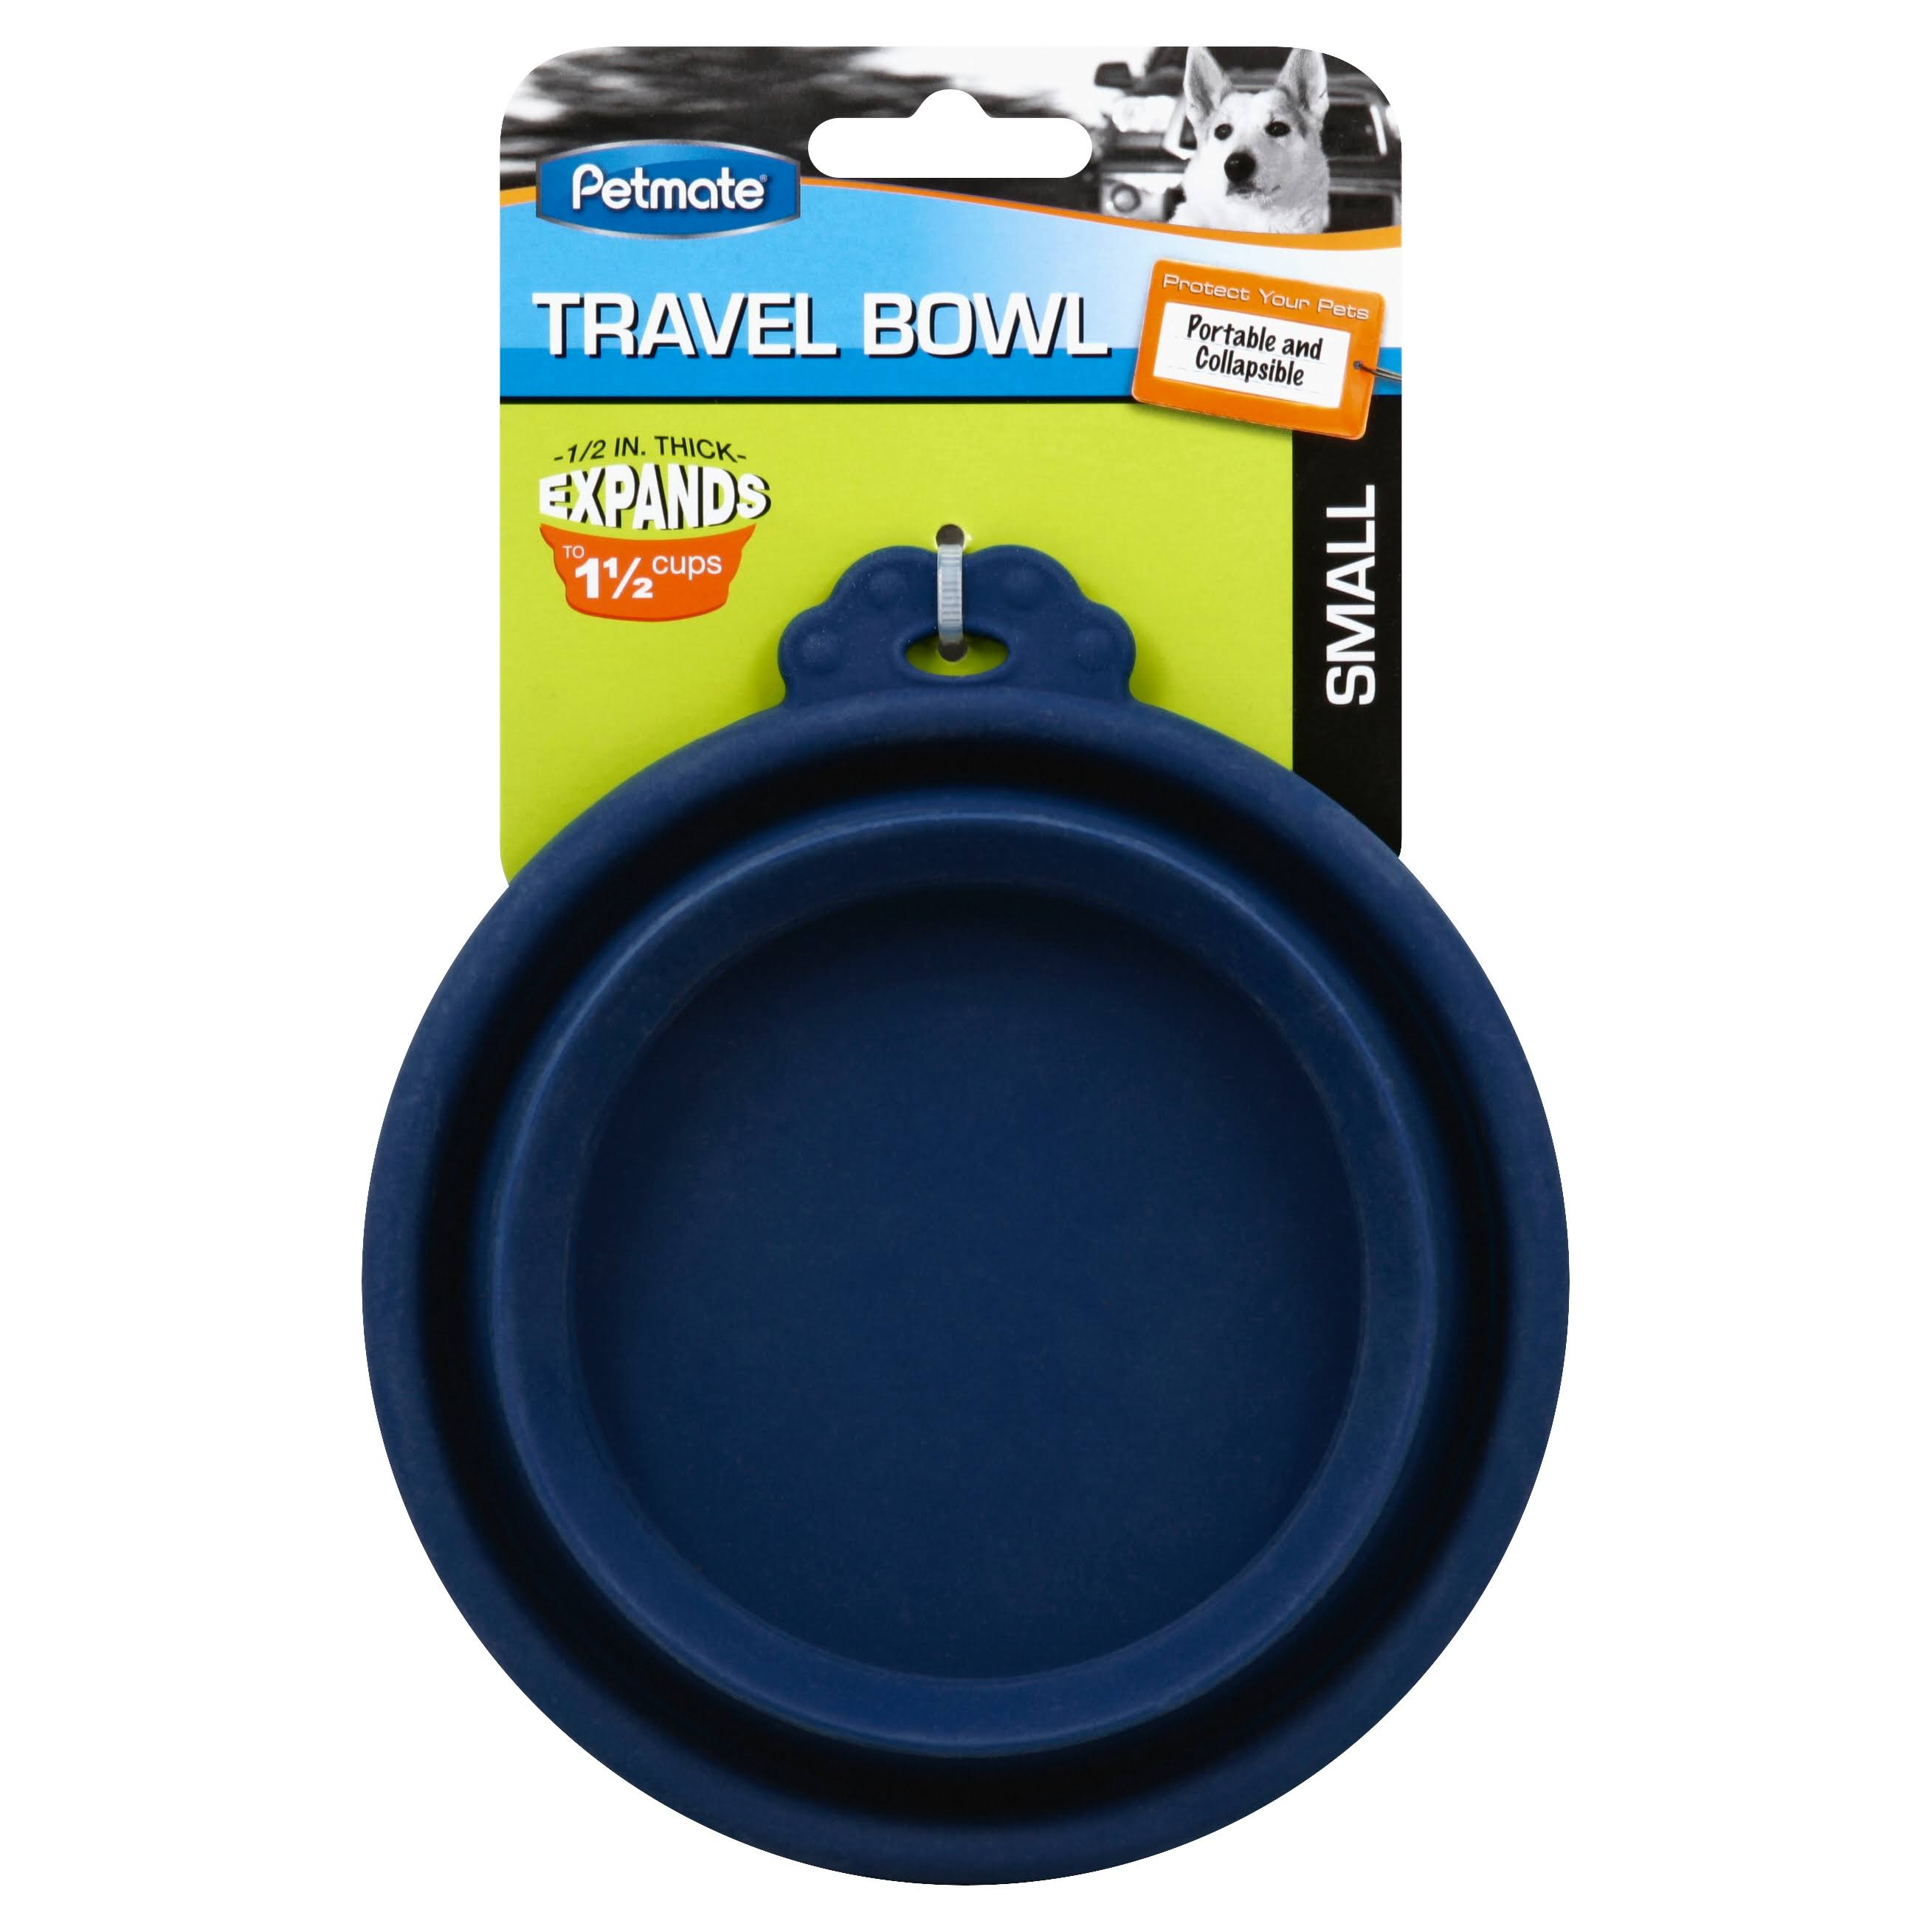 Petmate Travel Bowl - Navy Blue, Silicone, Round